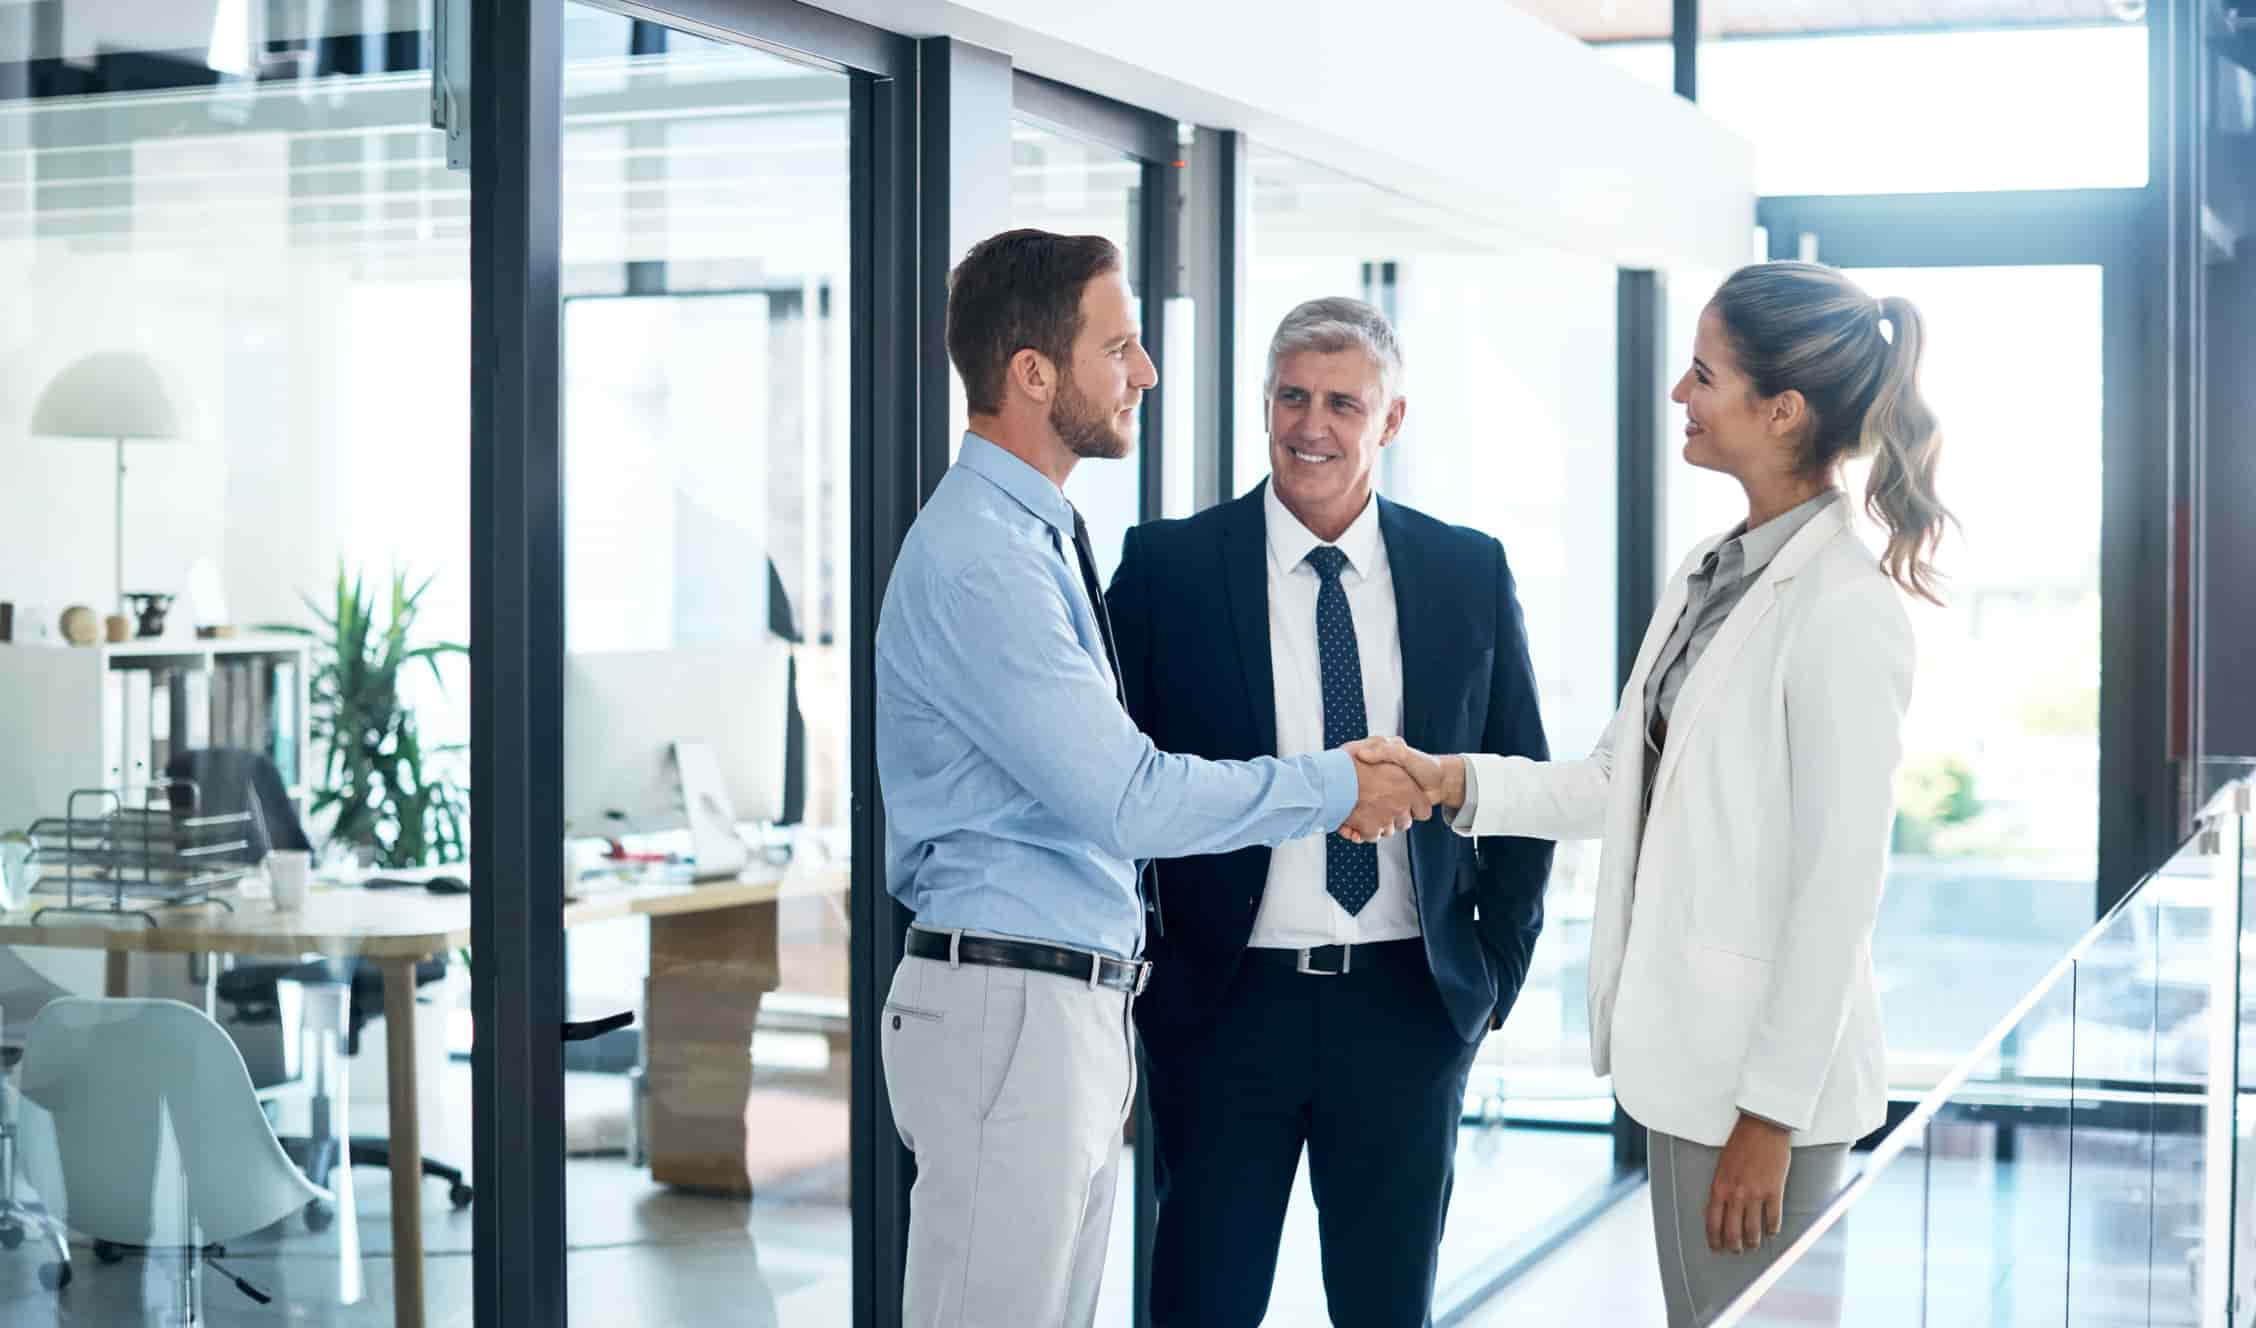 businessman and businesswoman shaking hands in a modern office